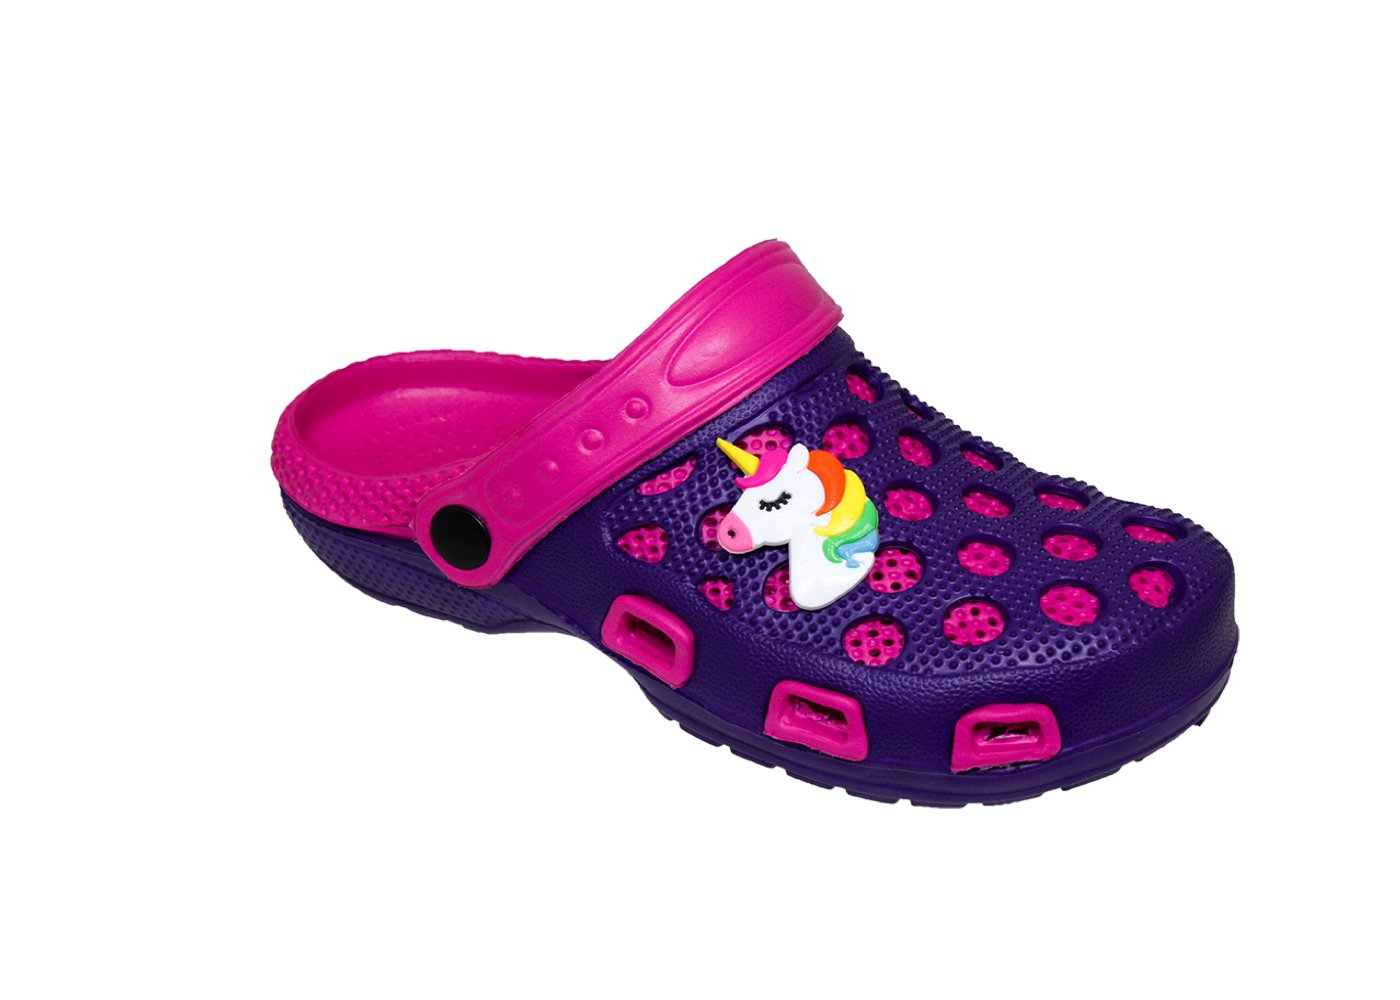 WP Spring/Summer Toddler Girls' Fashion Slingback Sandal Clogs with Cute Appliqué Detail (US Toddler 8, Pink/Purple)